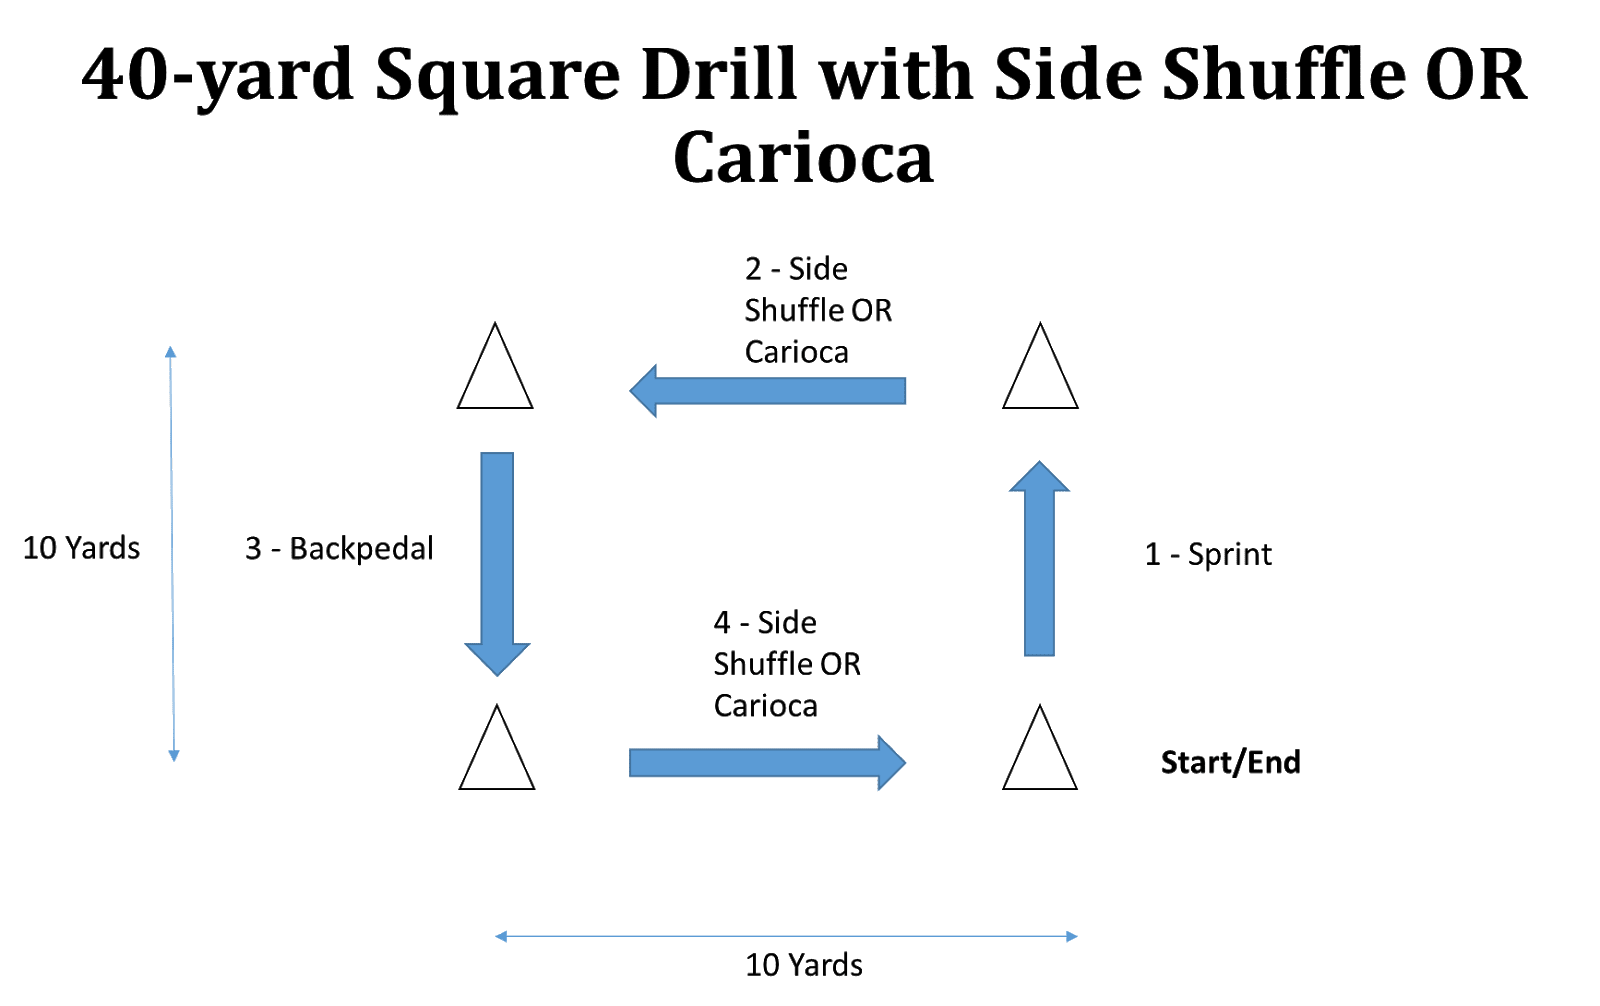 *Set up 4 cones with 10 yards between each cone (40 yards total)  Complete x 4 reps in each direction  Reps 1 & 3 are side shuffle; Reps 2 & 4 are carioca  Work x 10'': Rest x 40''; Extra 90'' rest after 3